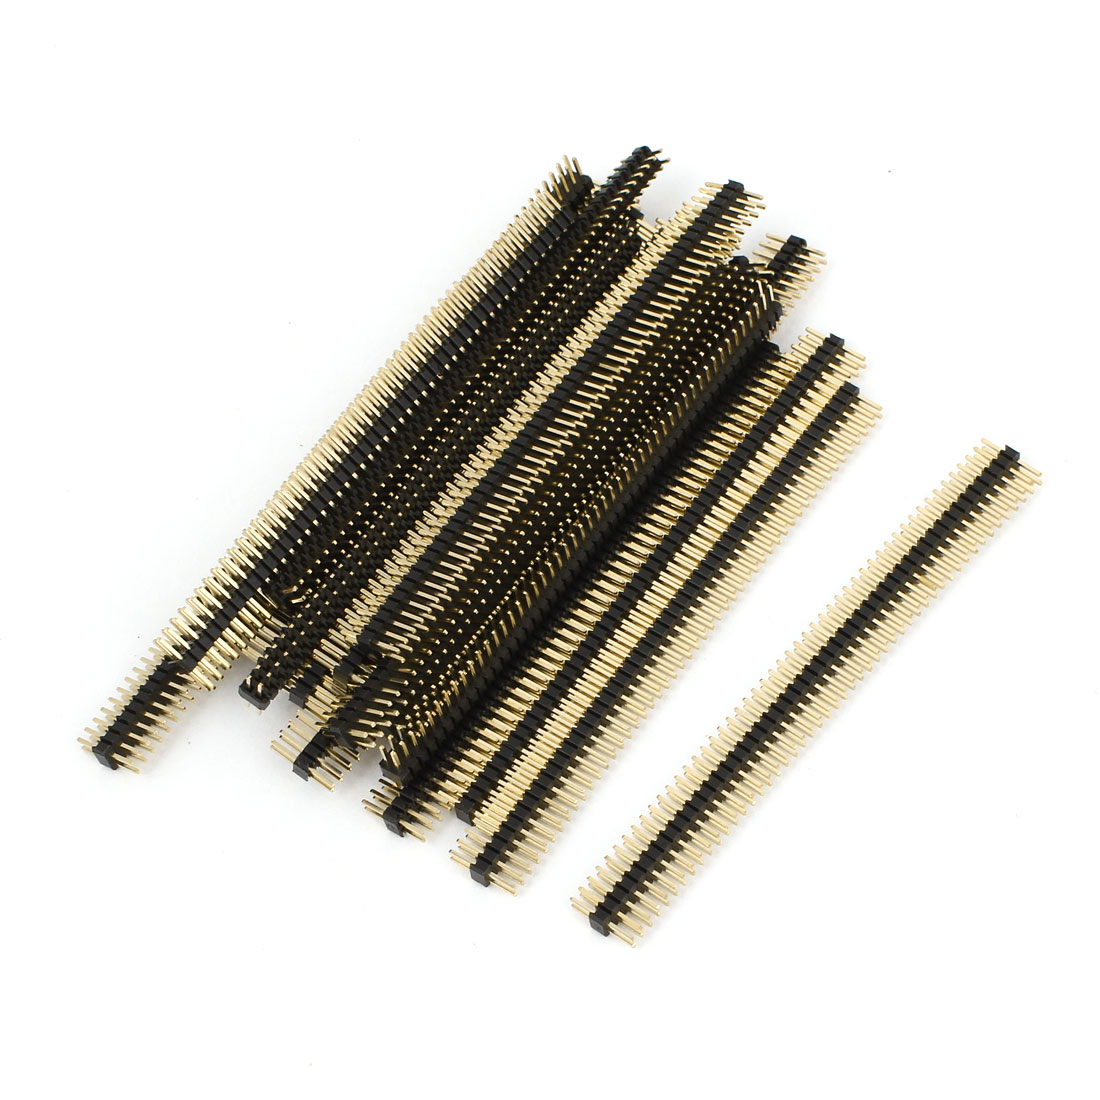 20pcs 50 Way Double Row Straight Pin Male Header Strip 1.27mm Pitch